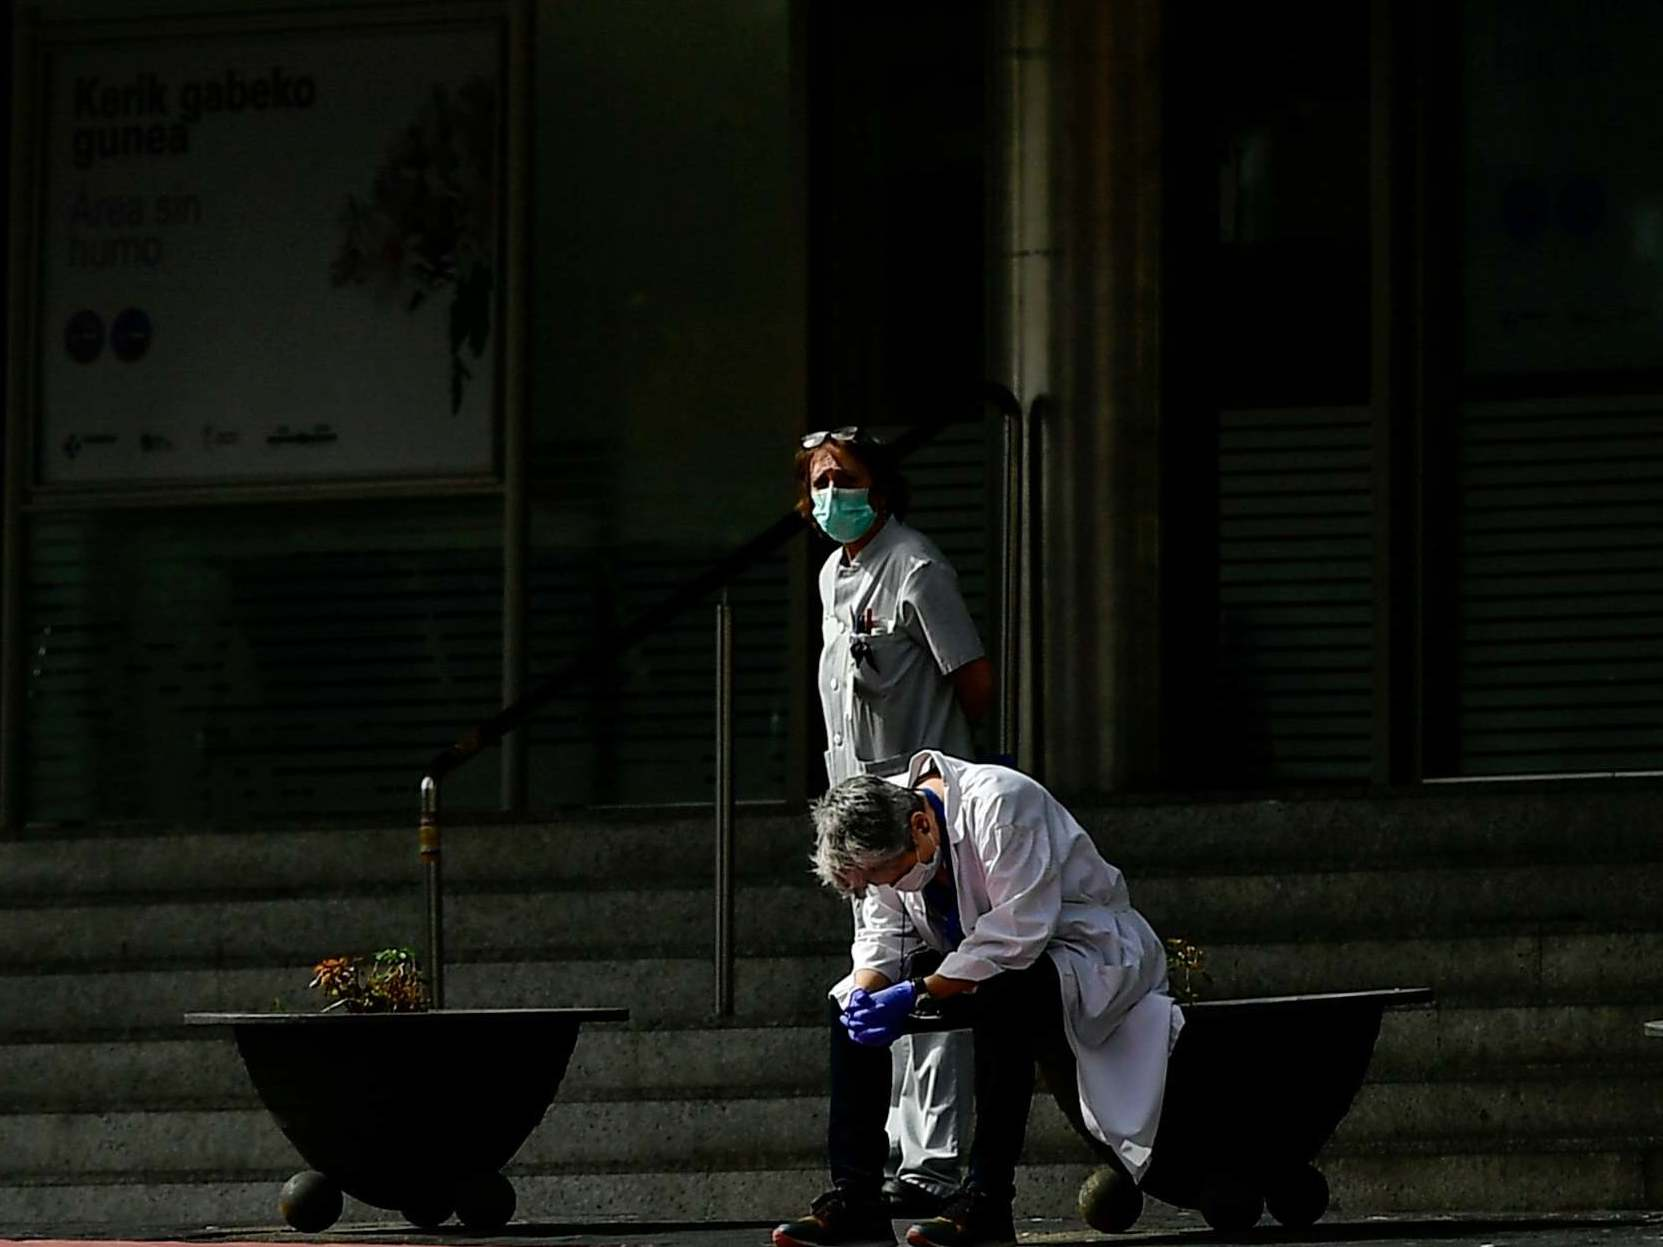 Spain coronavirus death toll overtakes China after surge in cases